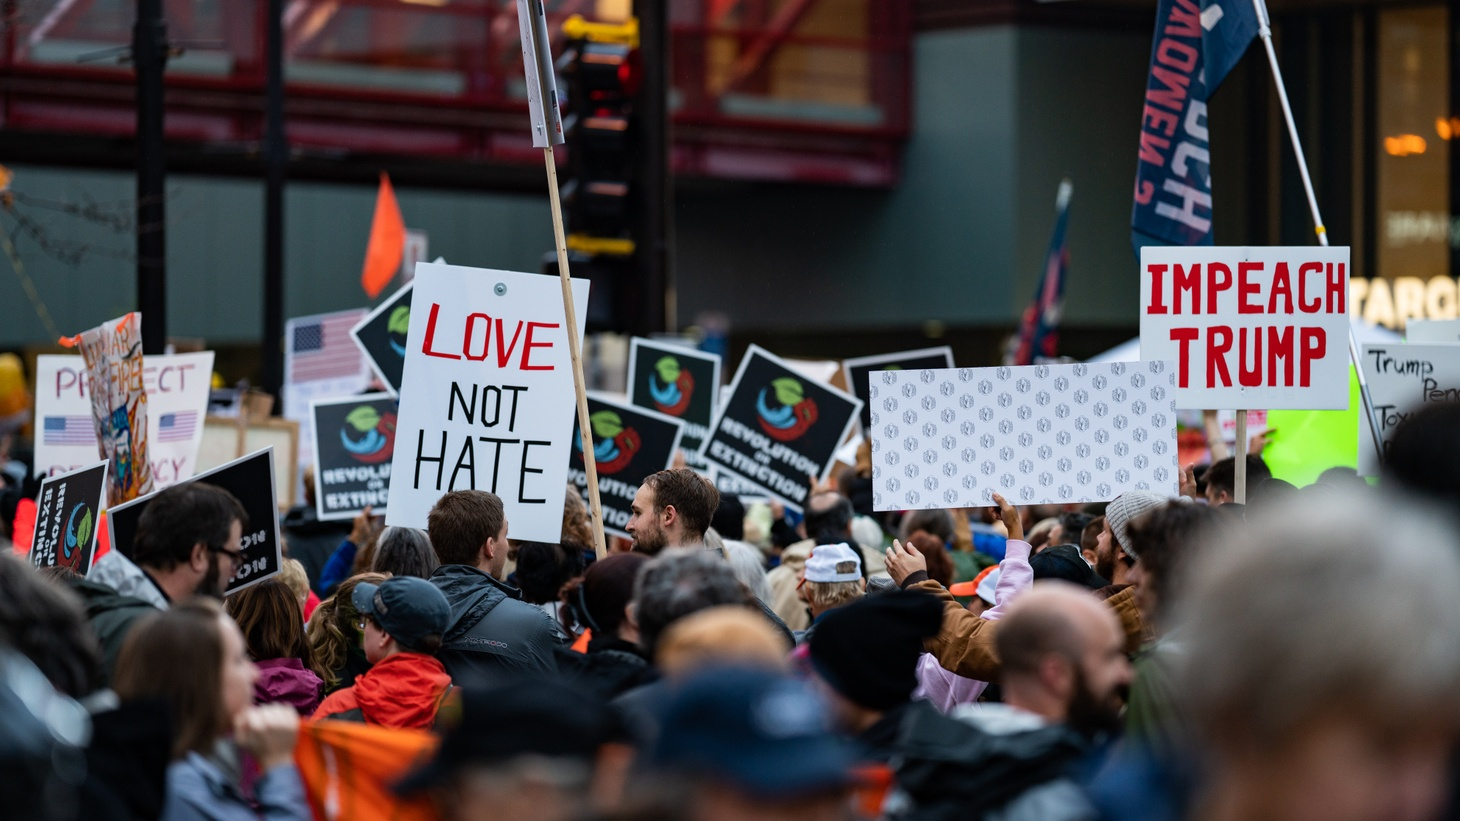 Protesters gathered outside the Target Center in Minneapolis, Minnesota, where President Donald J. Trump held a campaign rally on October 10, 2019.